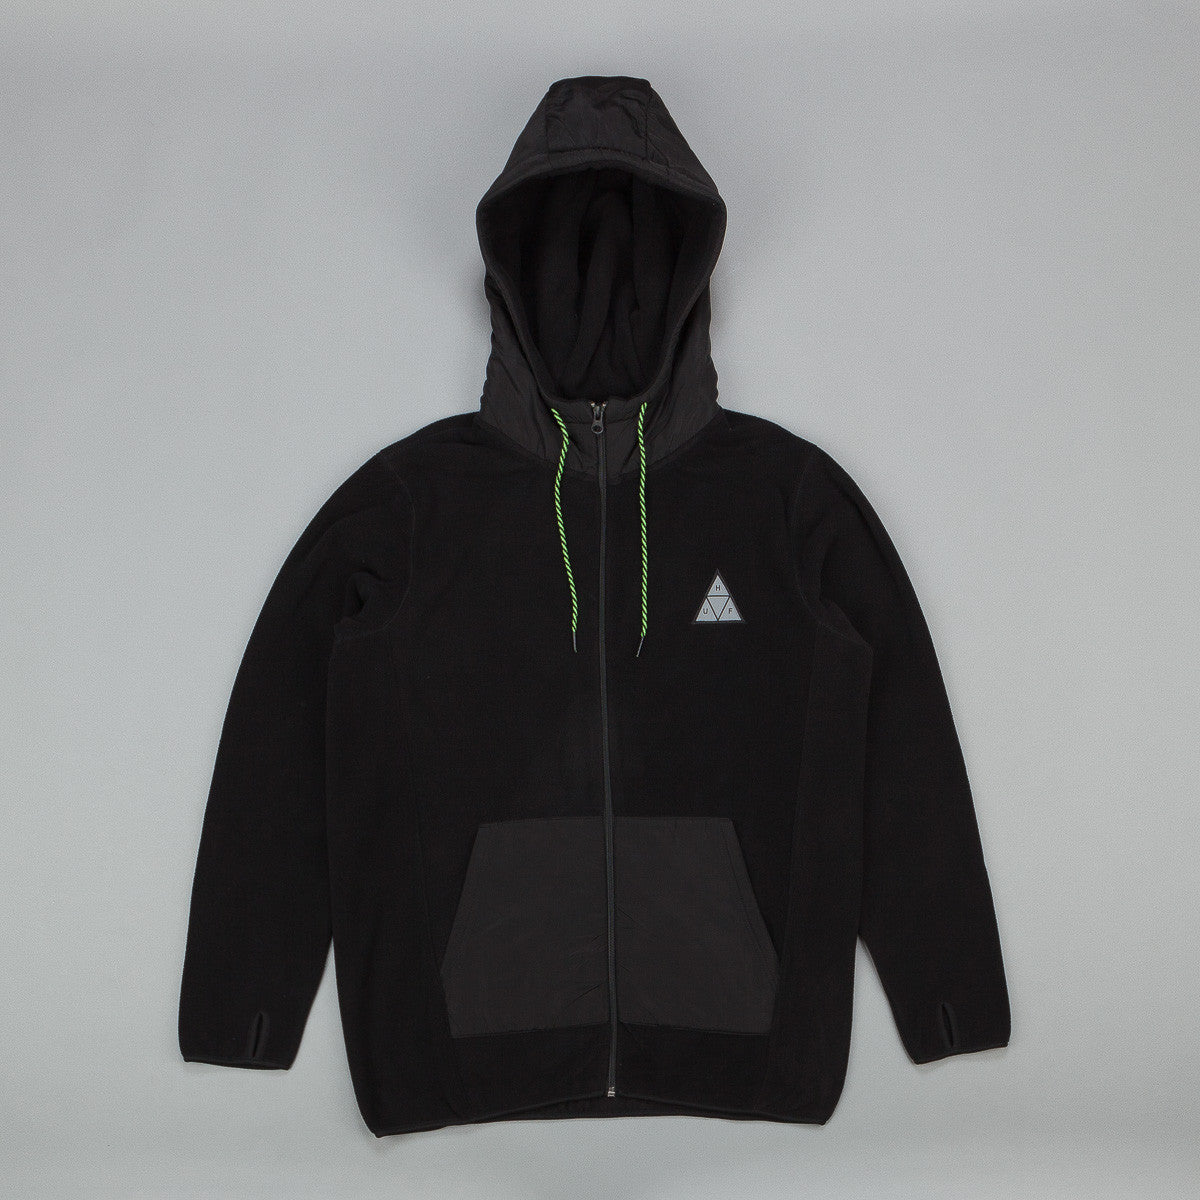 Huf Stanton Polar Fleece Zip Up Hooded Sweatshirt